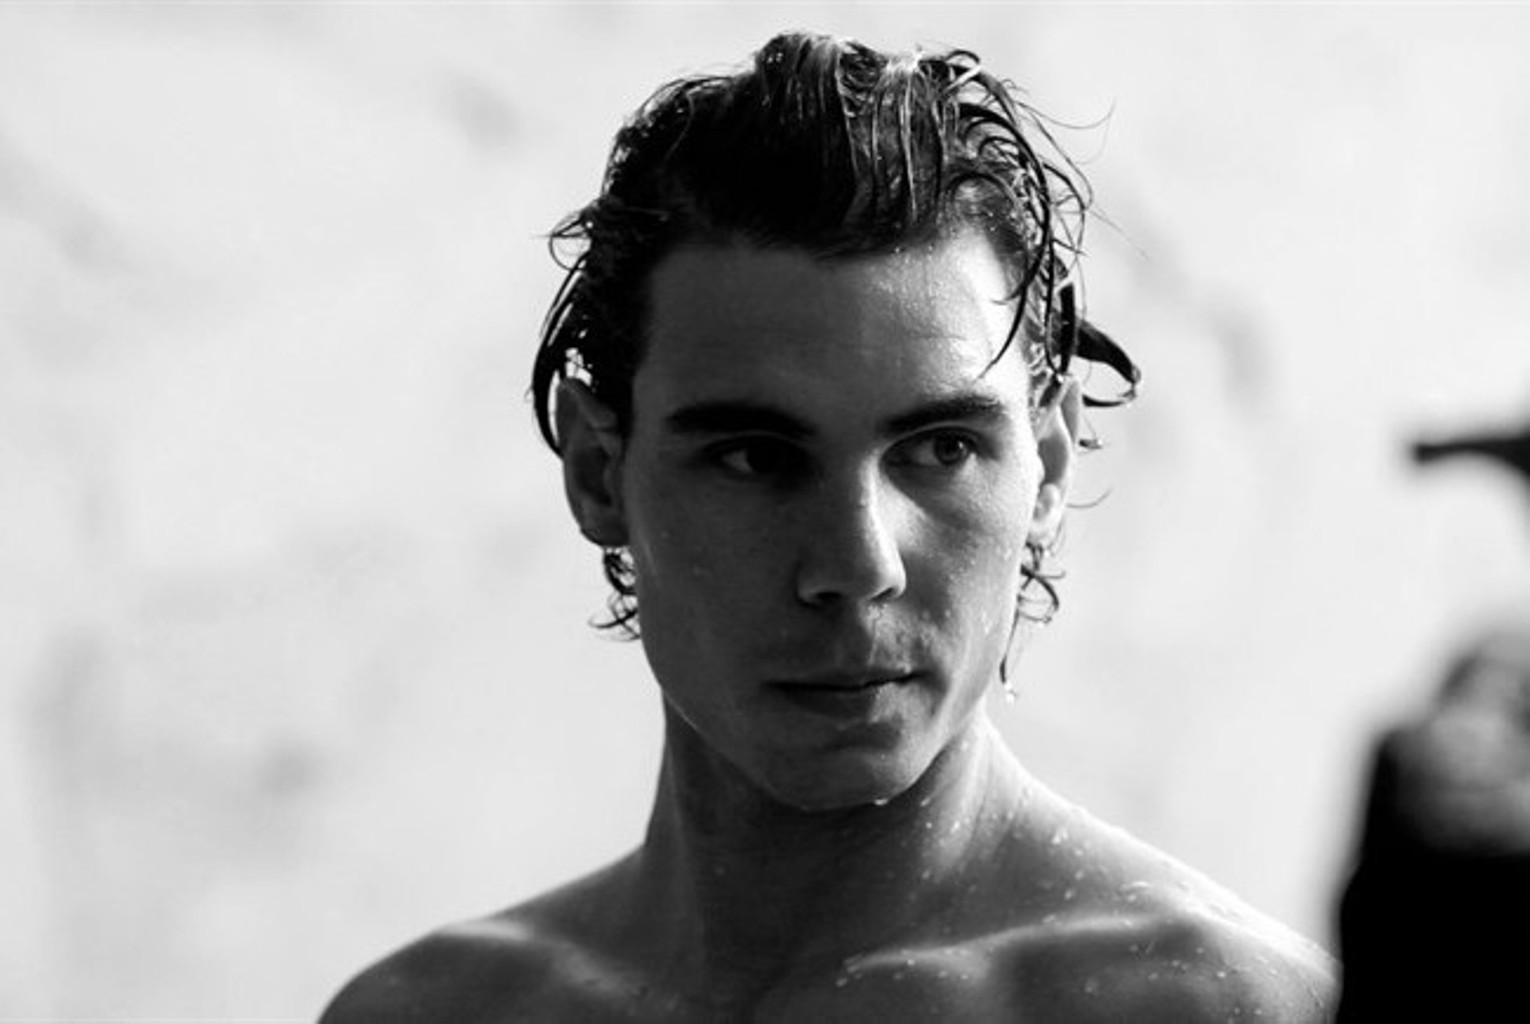 nadal armani underwear - Rafael Nadal Photo (19462031) - Fanpop ...